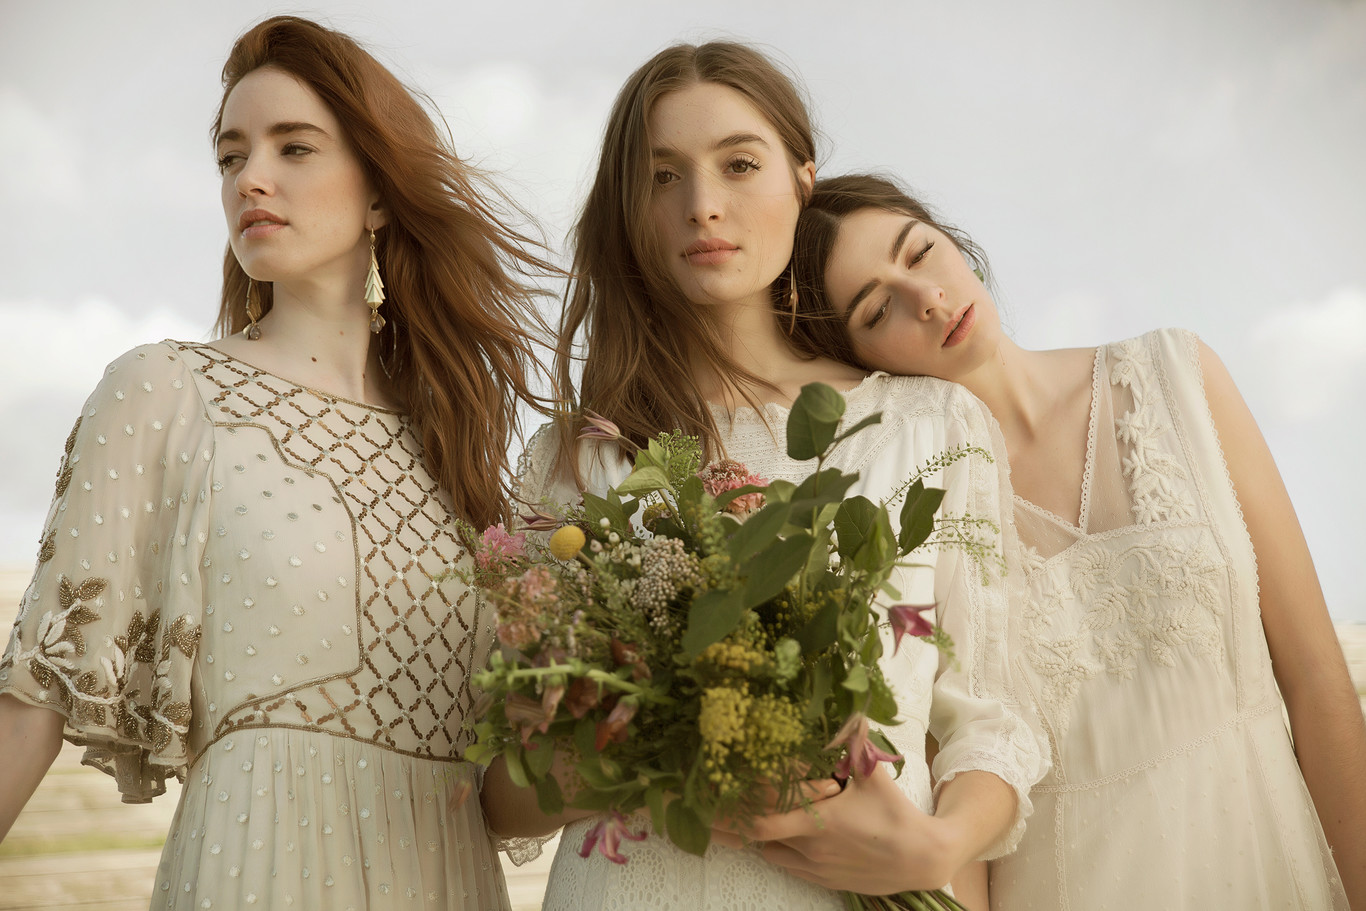 The second collection of wedding dresses of Intropia makes us fall in love again